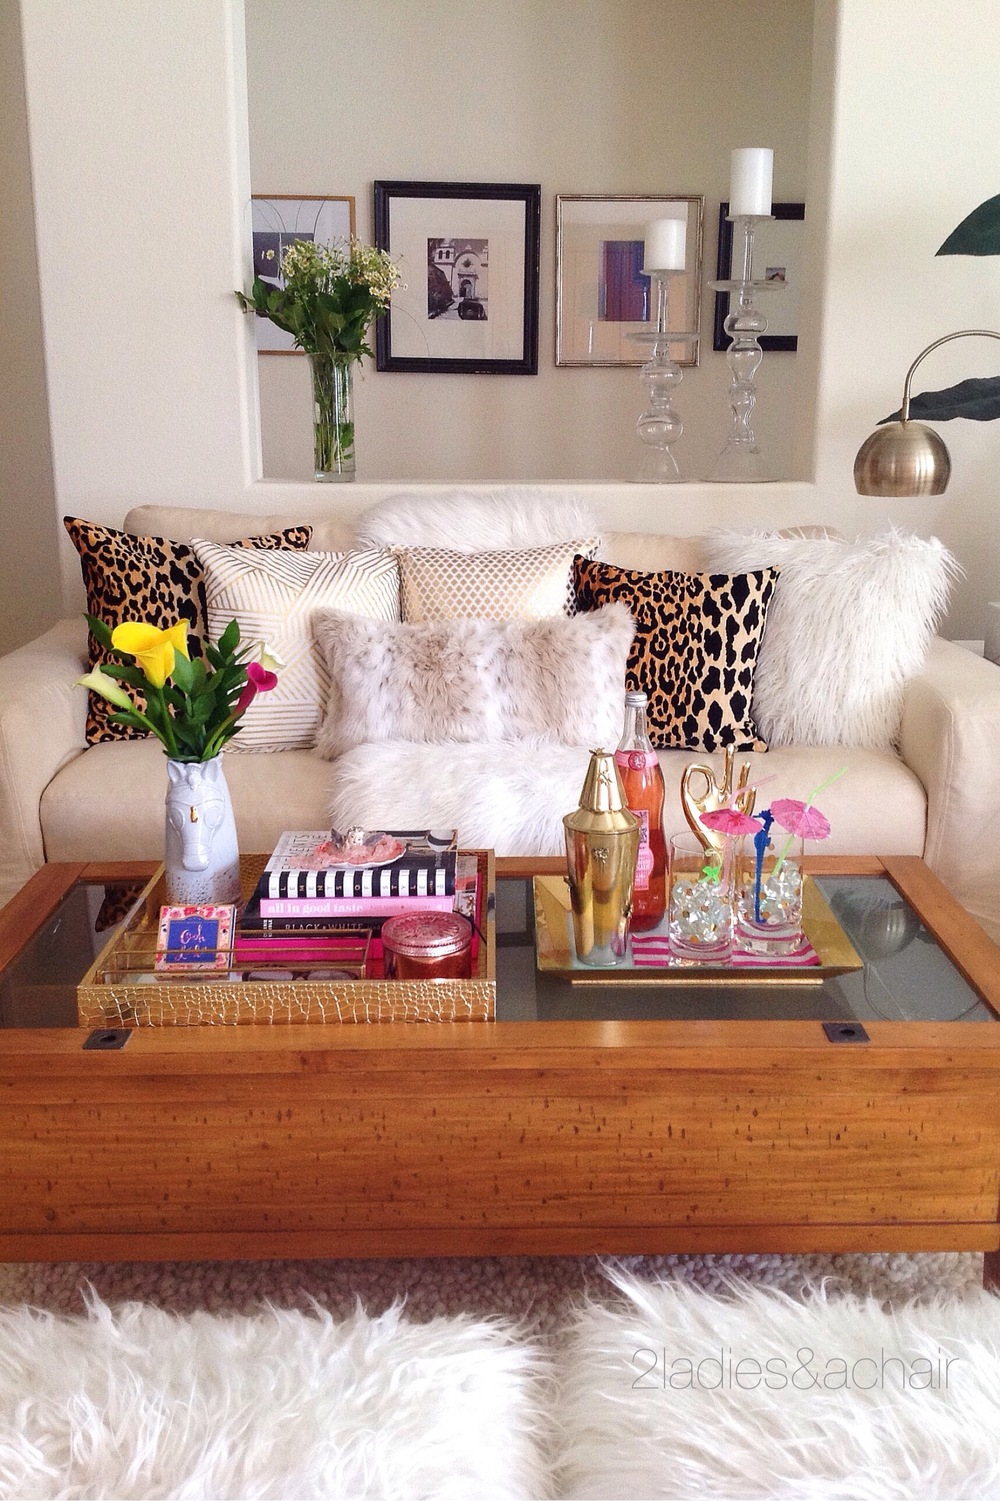 5 useful tips when decorating your coffee table 2 ladies a chair geotapseo Gallery